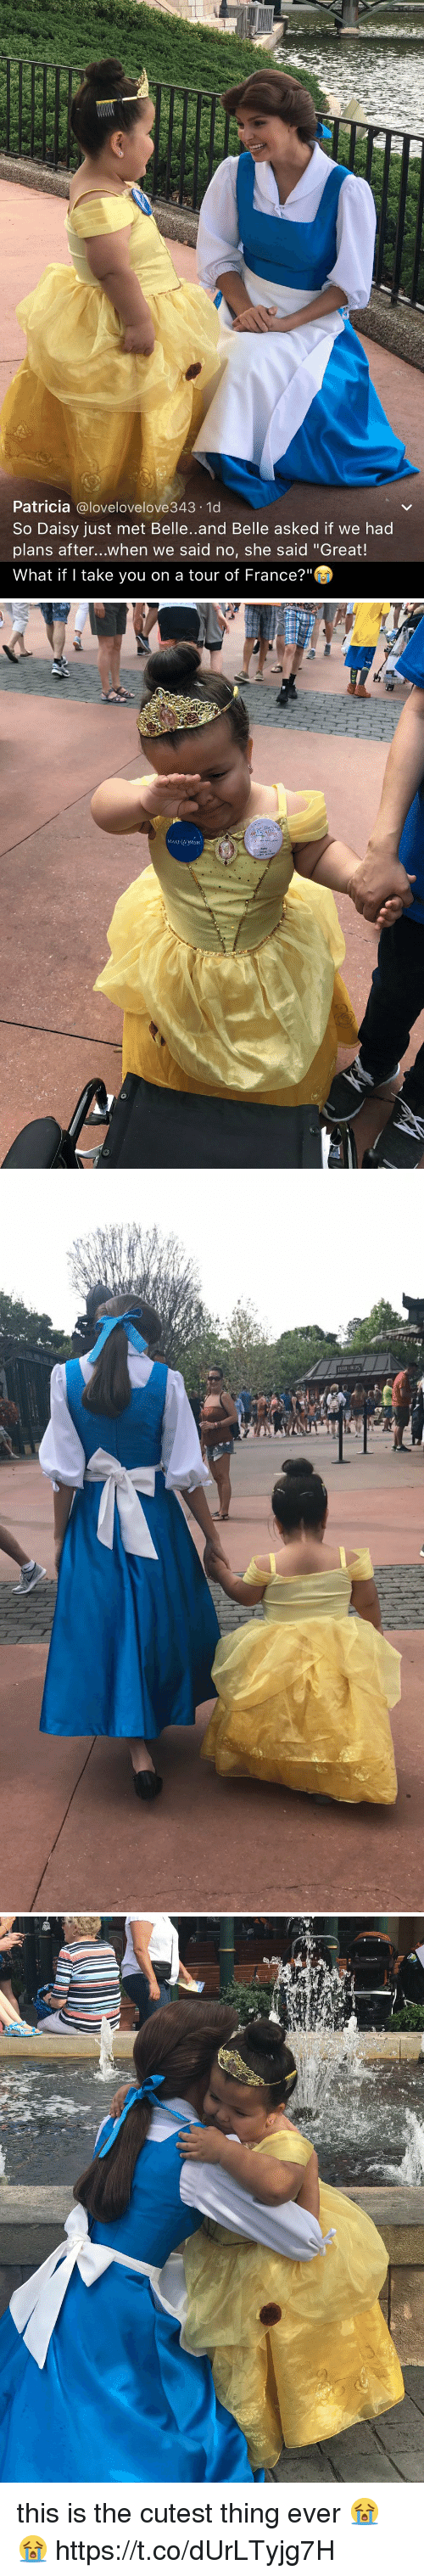 """France, Girl Memes, and Belle: Patricia  alovelovelove343.1d  So Daisy just met Belle. and Belle asked if we had  plans after...when we said no, she said """"Great!  What if I take you on a tour of France?   MAKE AwisH   de-   쌓  -a this is the cutest thing ever 😭😭 https://t.co/dUrLTyjg7H"""